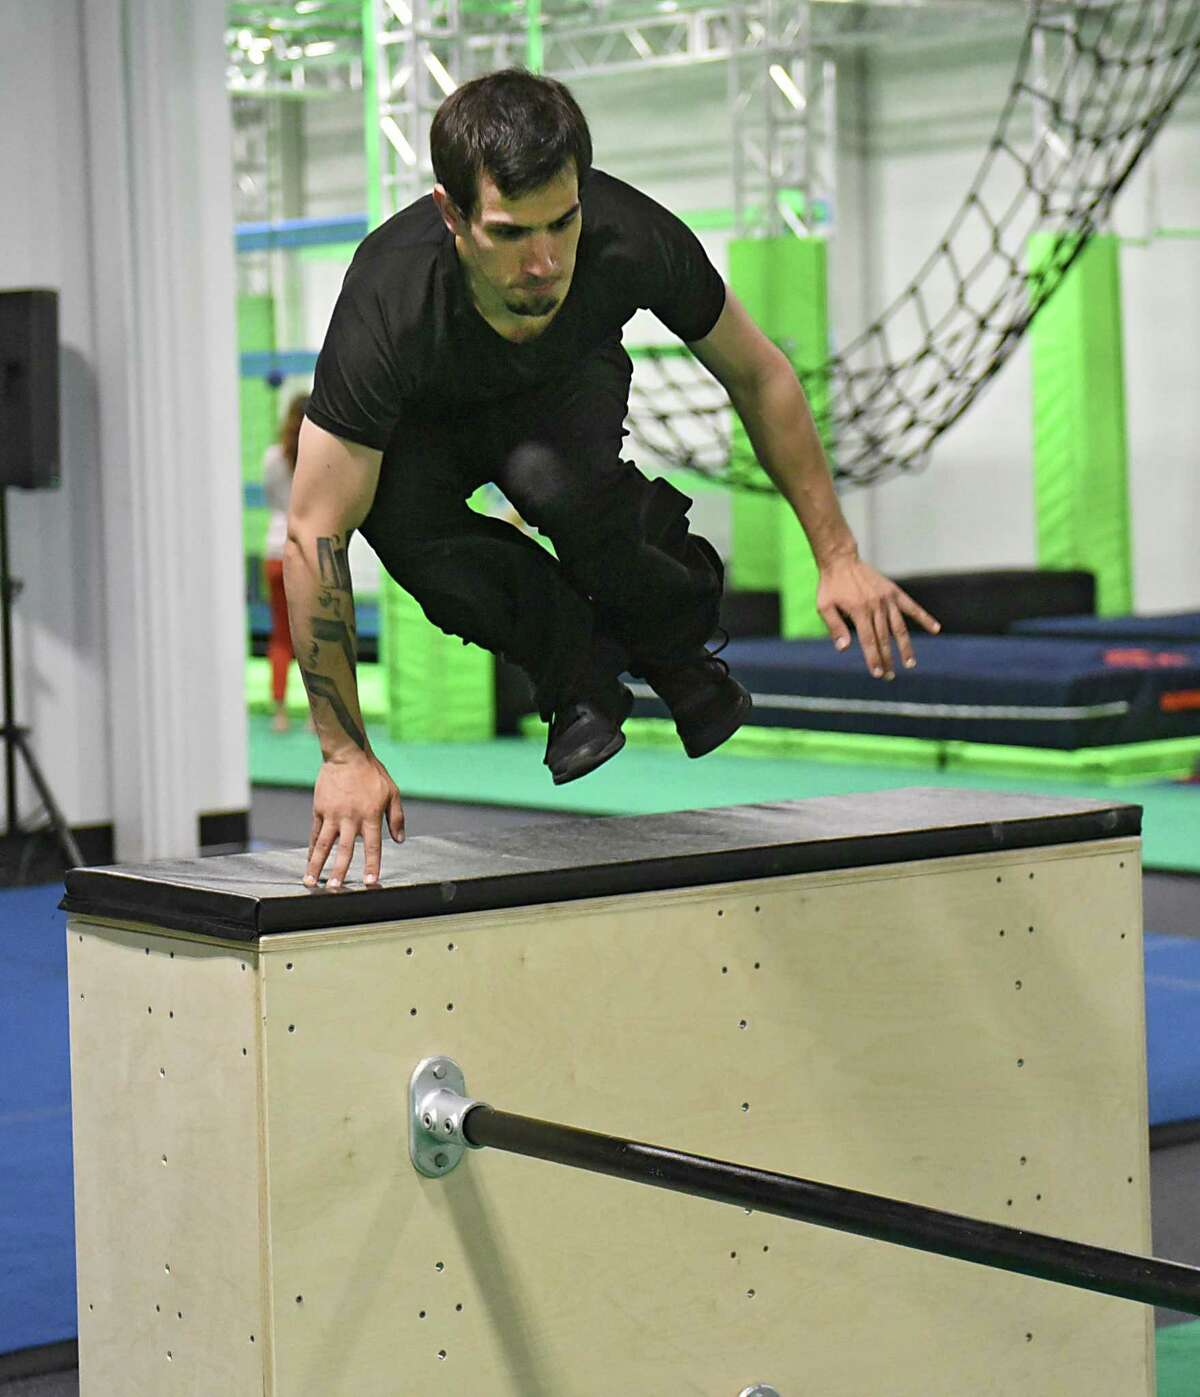 Parkour athlete coach Matthew Maloney practices his parkour moves in a newly opened Ninja Lab at Crossgates Commons on Wednesday, June 19, 2019 in Guilderland, N.Y. (Lori Van Buren/Times Union)